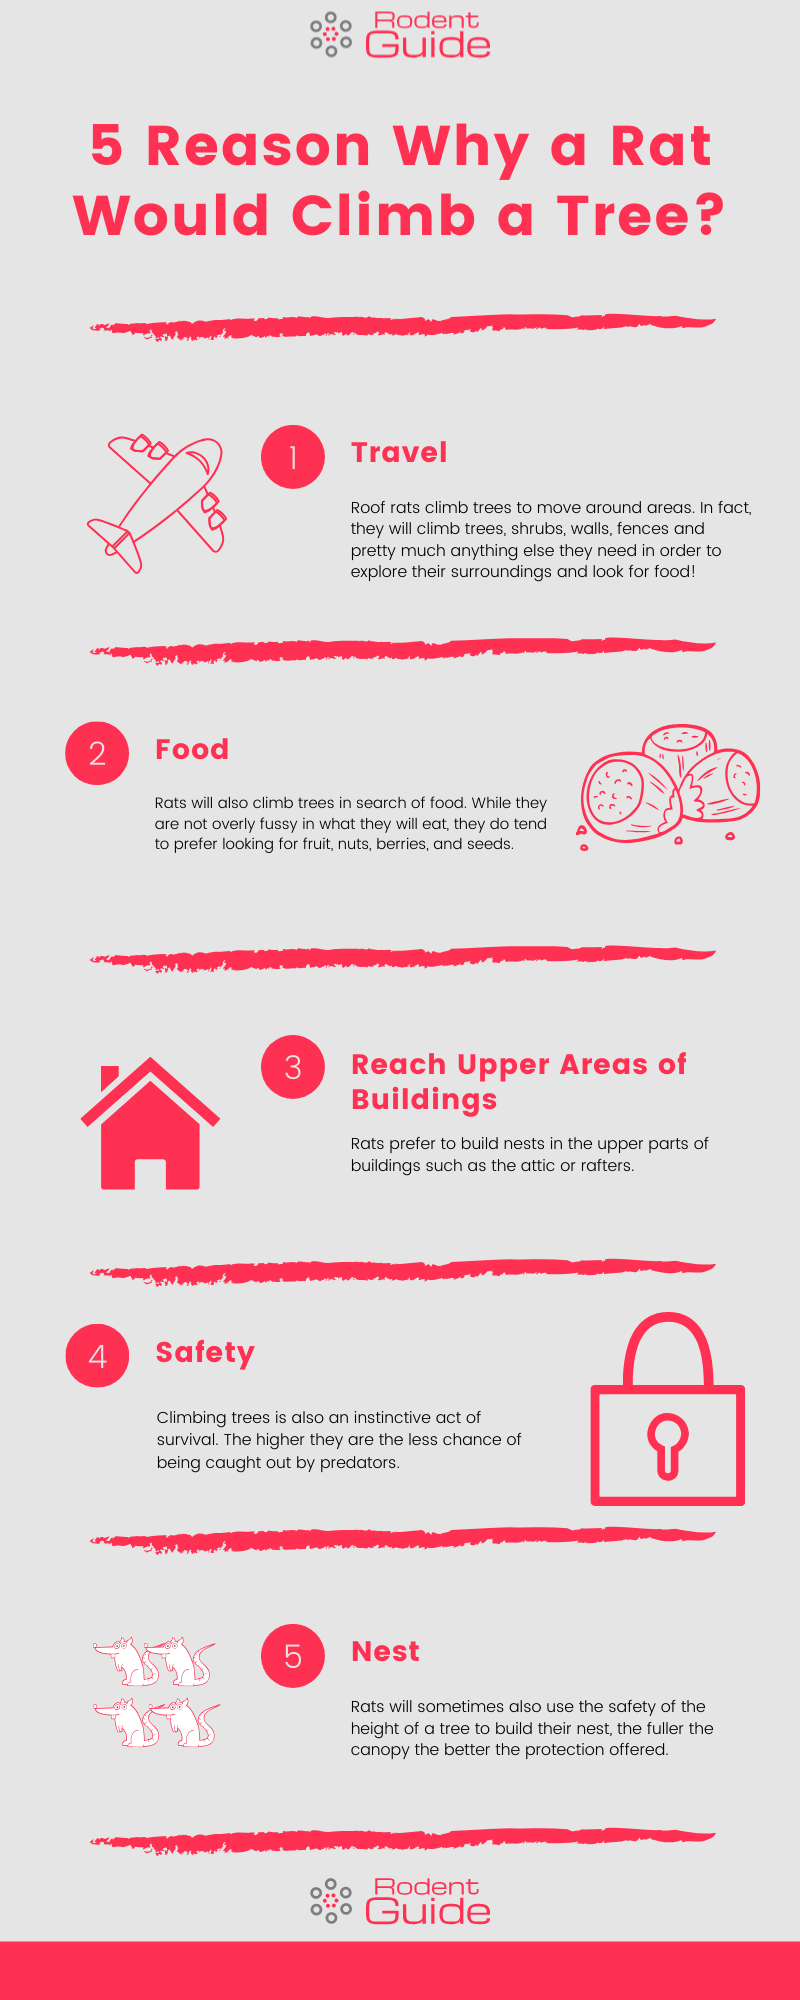 5 Reason Why a Rat Would Climb a Tree Infographic